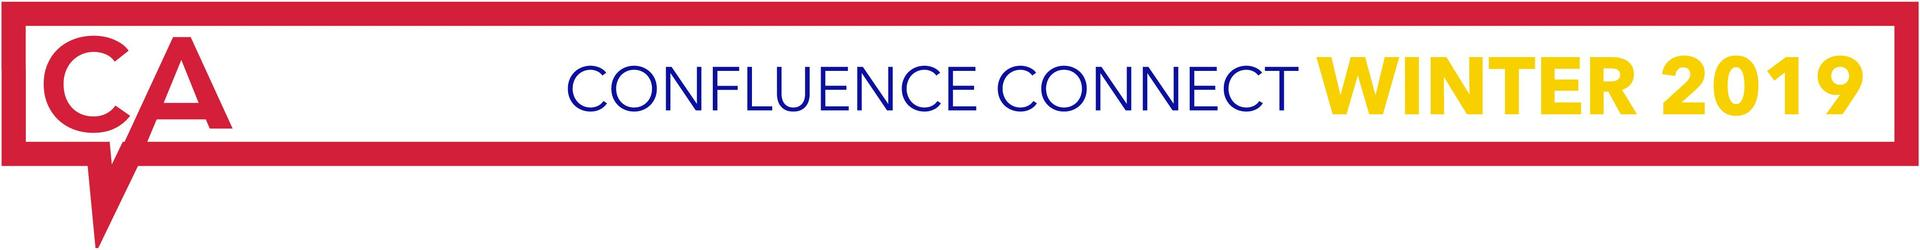 Confluence Connect - Winter 2019